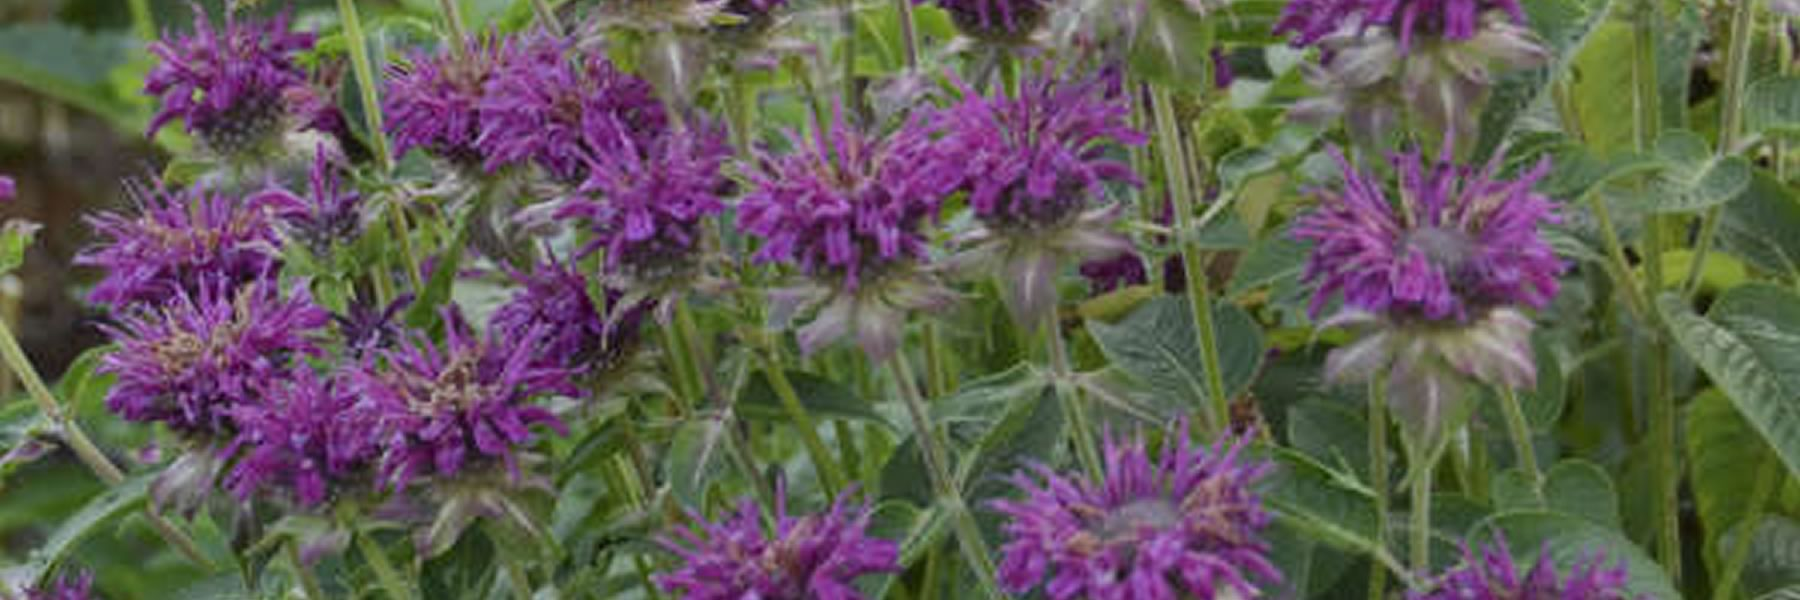 Bees love Beebalm flowers as do hummingbirds, butterflies and other pollinators. Photo courtesy Walters Gardens, Inc.